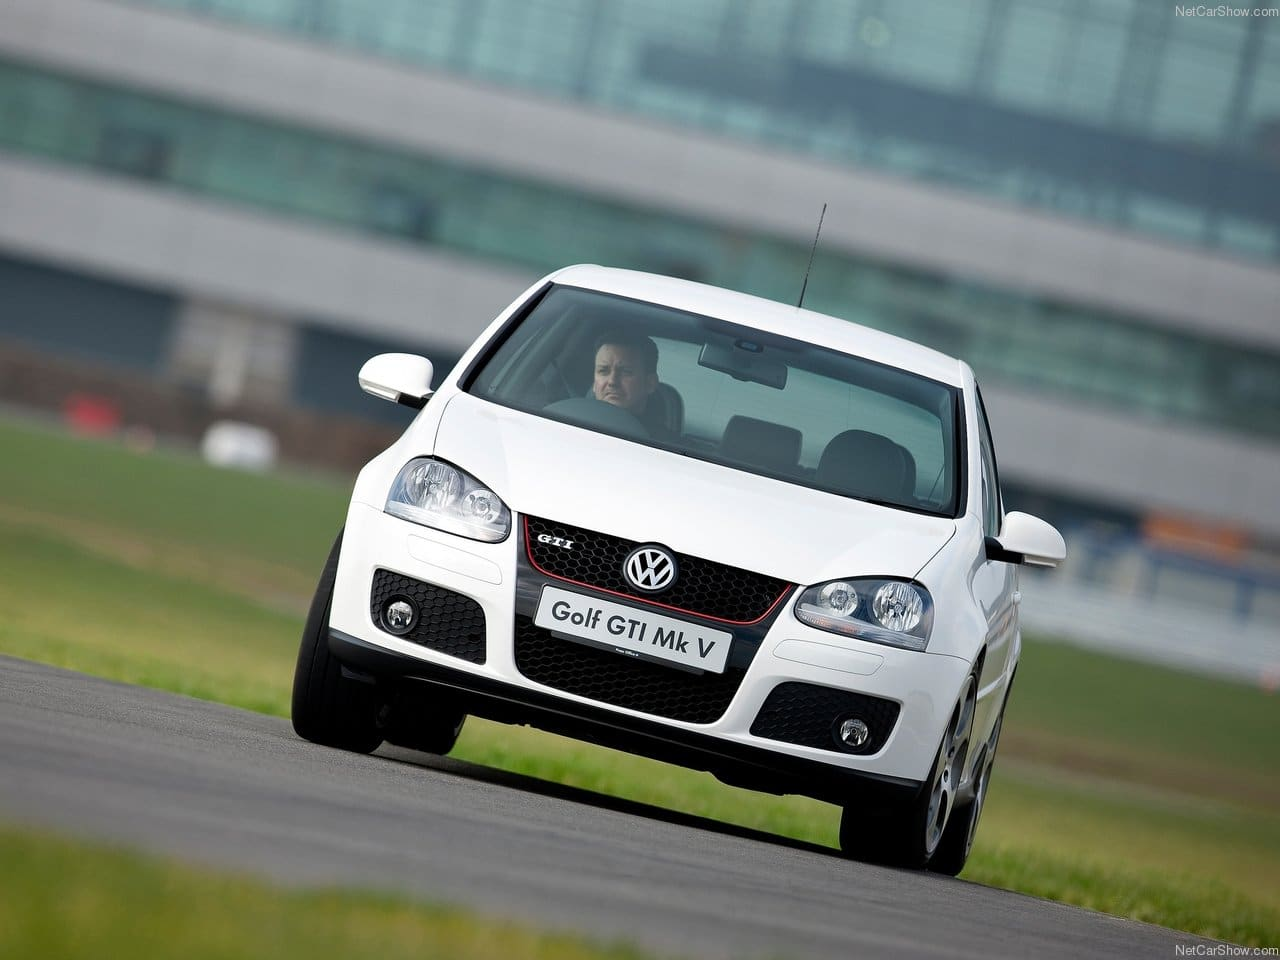 Voklswagen, Volkswagen Golf, Golf GTi, Mk V GTi, GTi, hot hatch, Golf, VW Golf, VW GTi, motoring, automotive, carandclassic, carandclassic.co.uk, adrian flux, motoring, automotive, classic car, retro car, featured, not2grand, not2grand.co.uk, Golf GTi buying guide